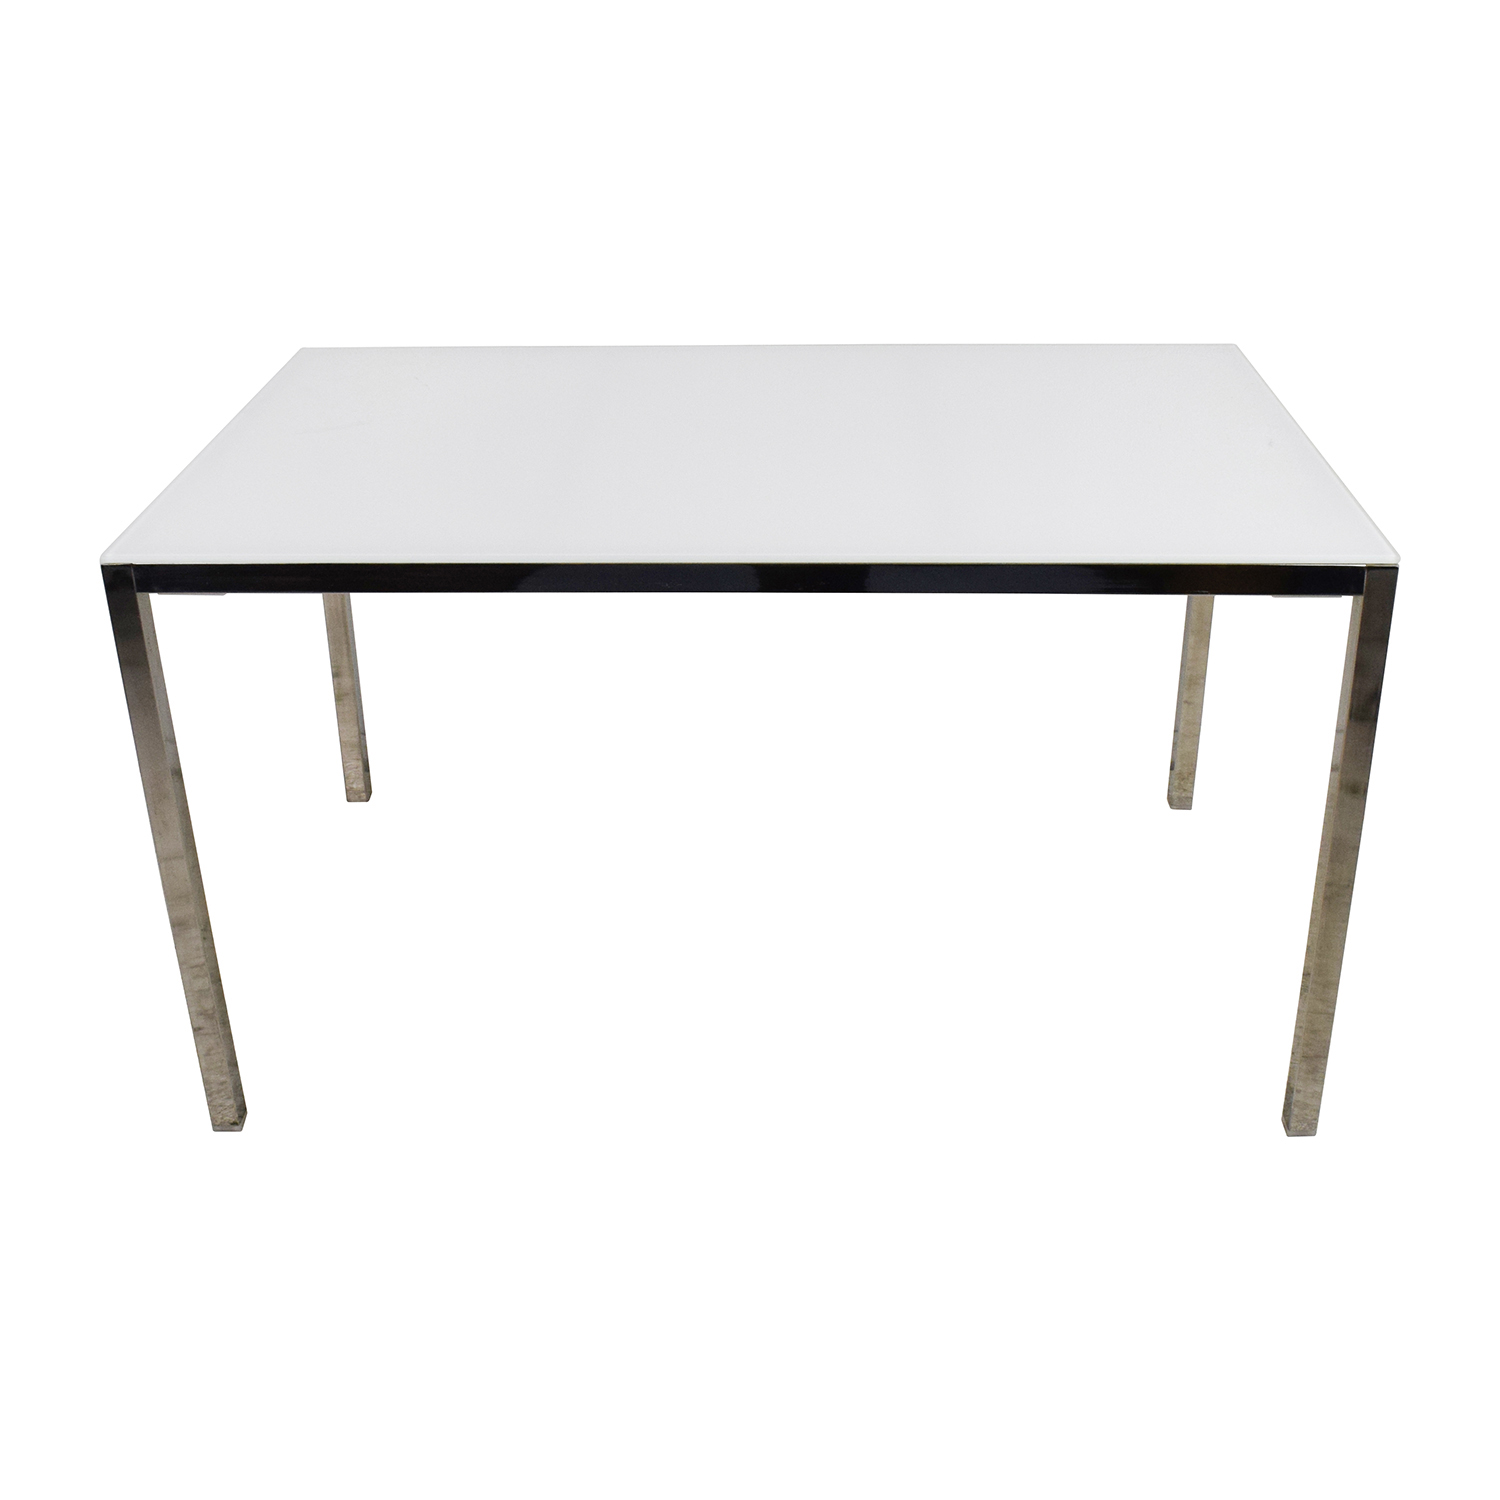 IKEA IKEA Torsby Large Glass Top Dining Table for sale